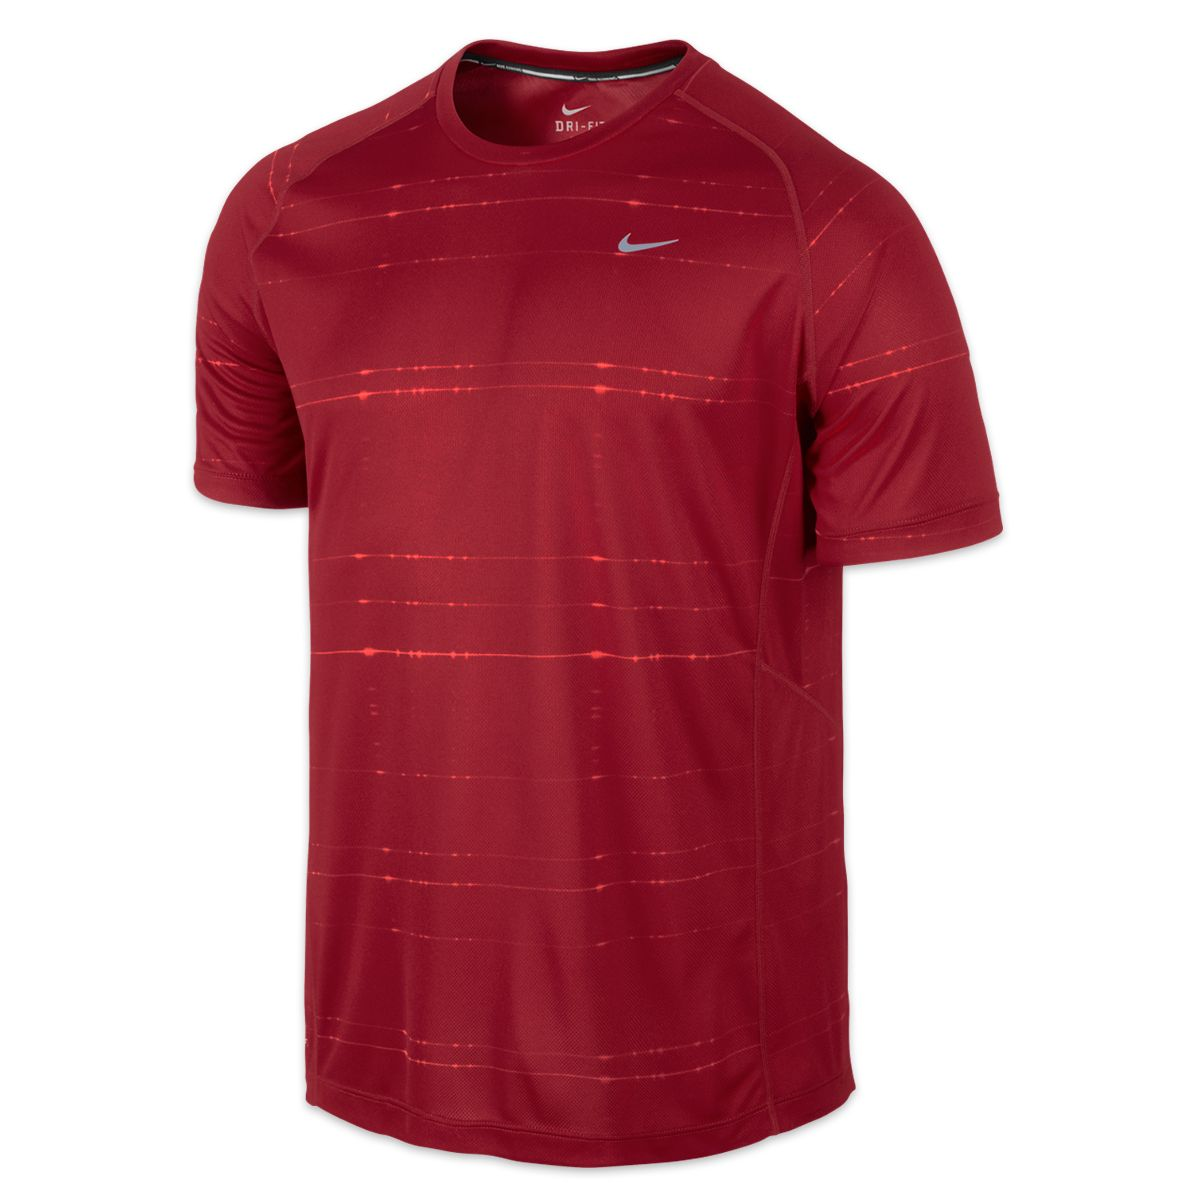 Nike Printed Miler Tee Dri-FIT fabric pulls away sweat for quick evaporation. Crew neck with interior taping for a comfortable fit.